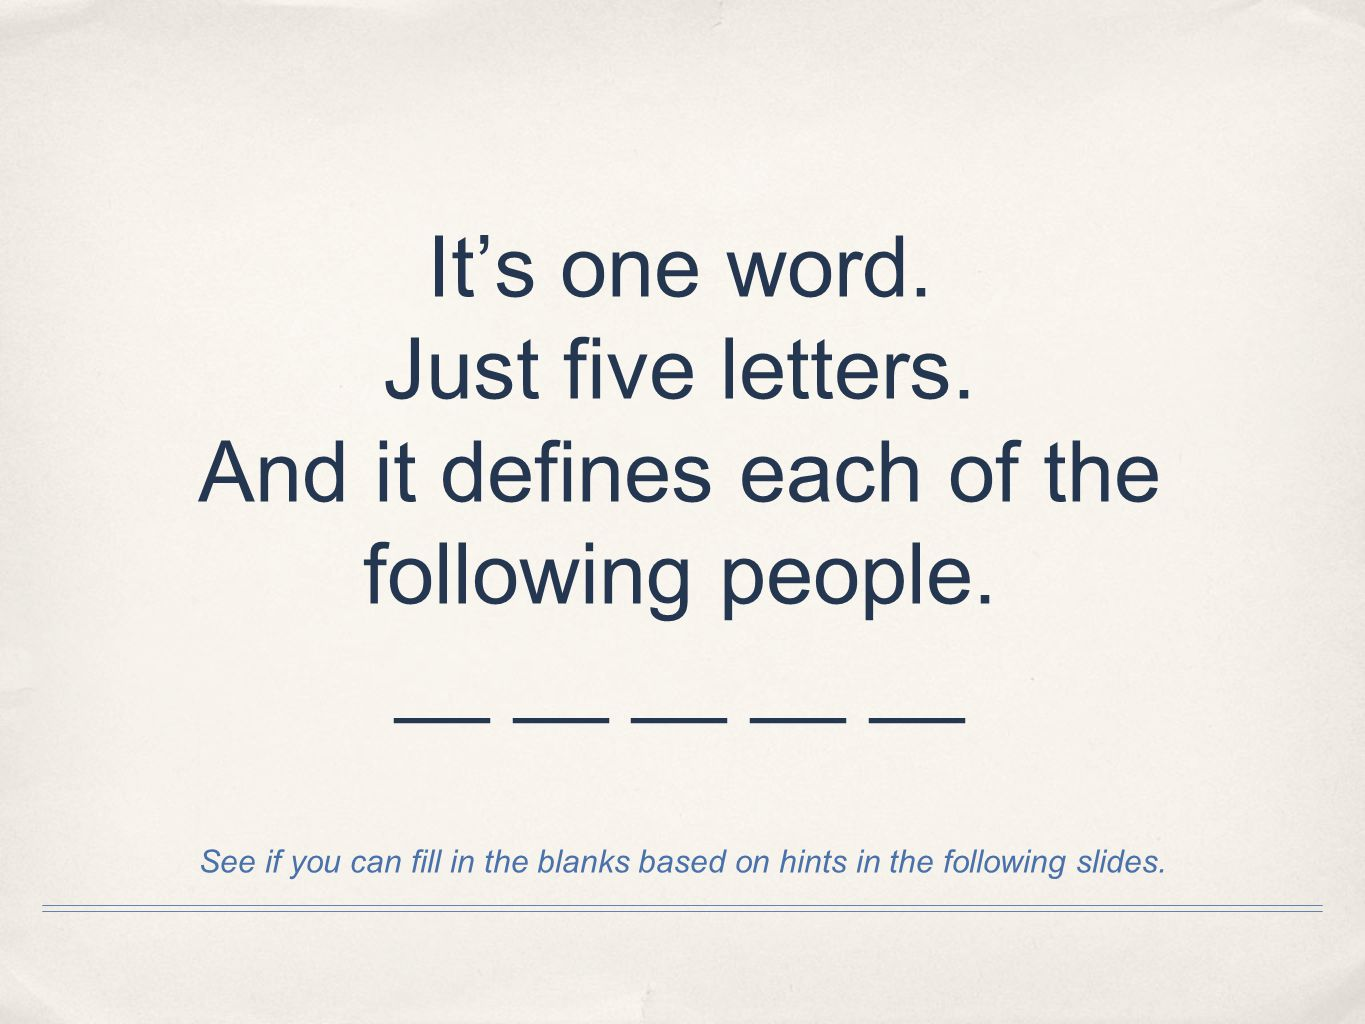 Its one word. Just five letters. And it defines each of the following people.